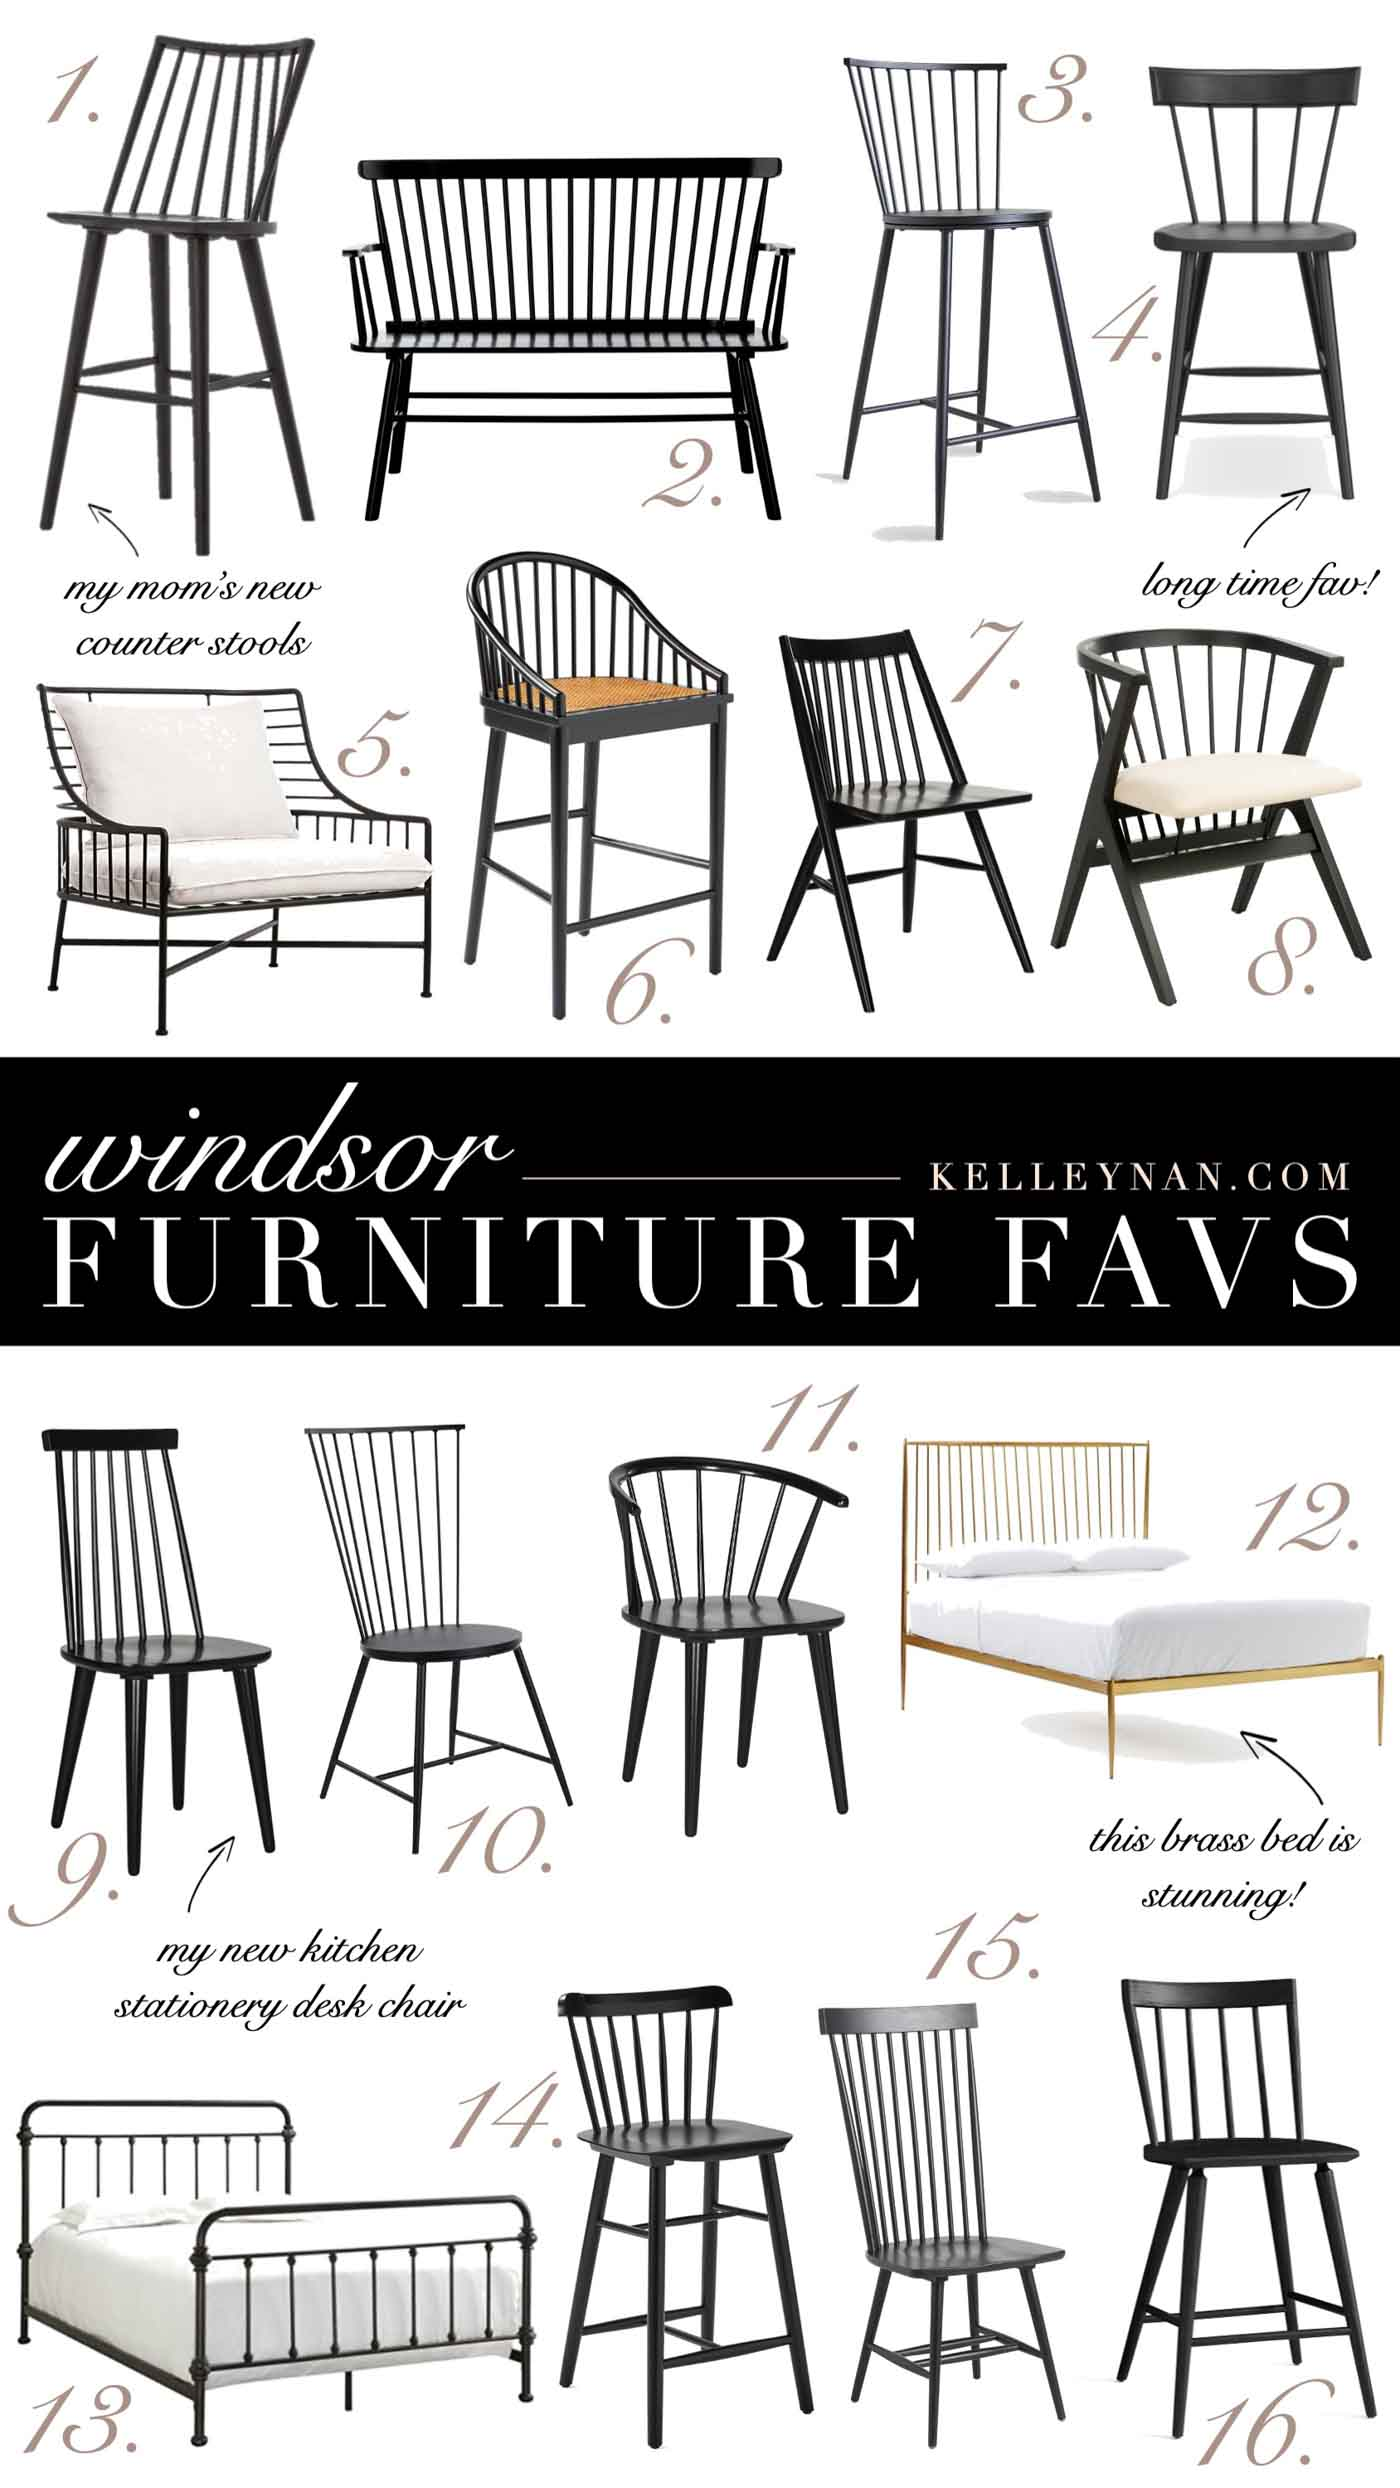 The Best Black Windsor Chairs, Stools, Benches and Other Windsor Style Furniture Favs!